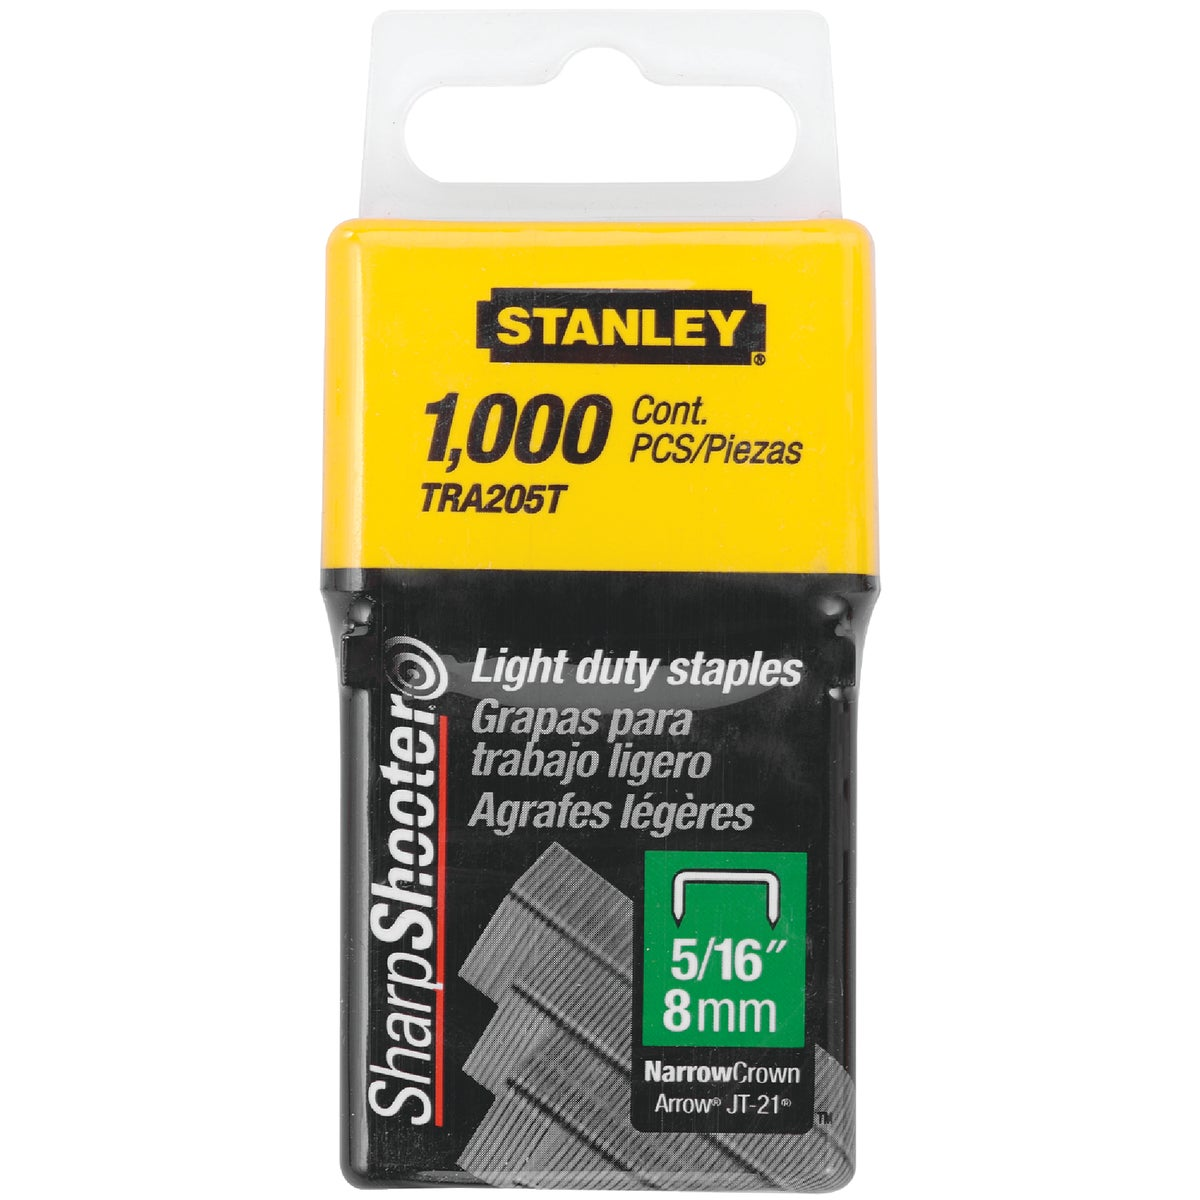 "5/16"" LIGHT DUTY STAPLE - TRA205T by Stanley Tools"